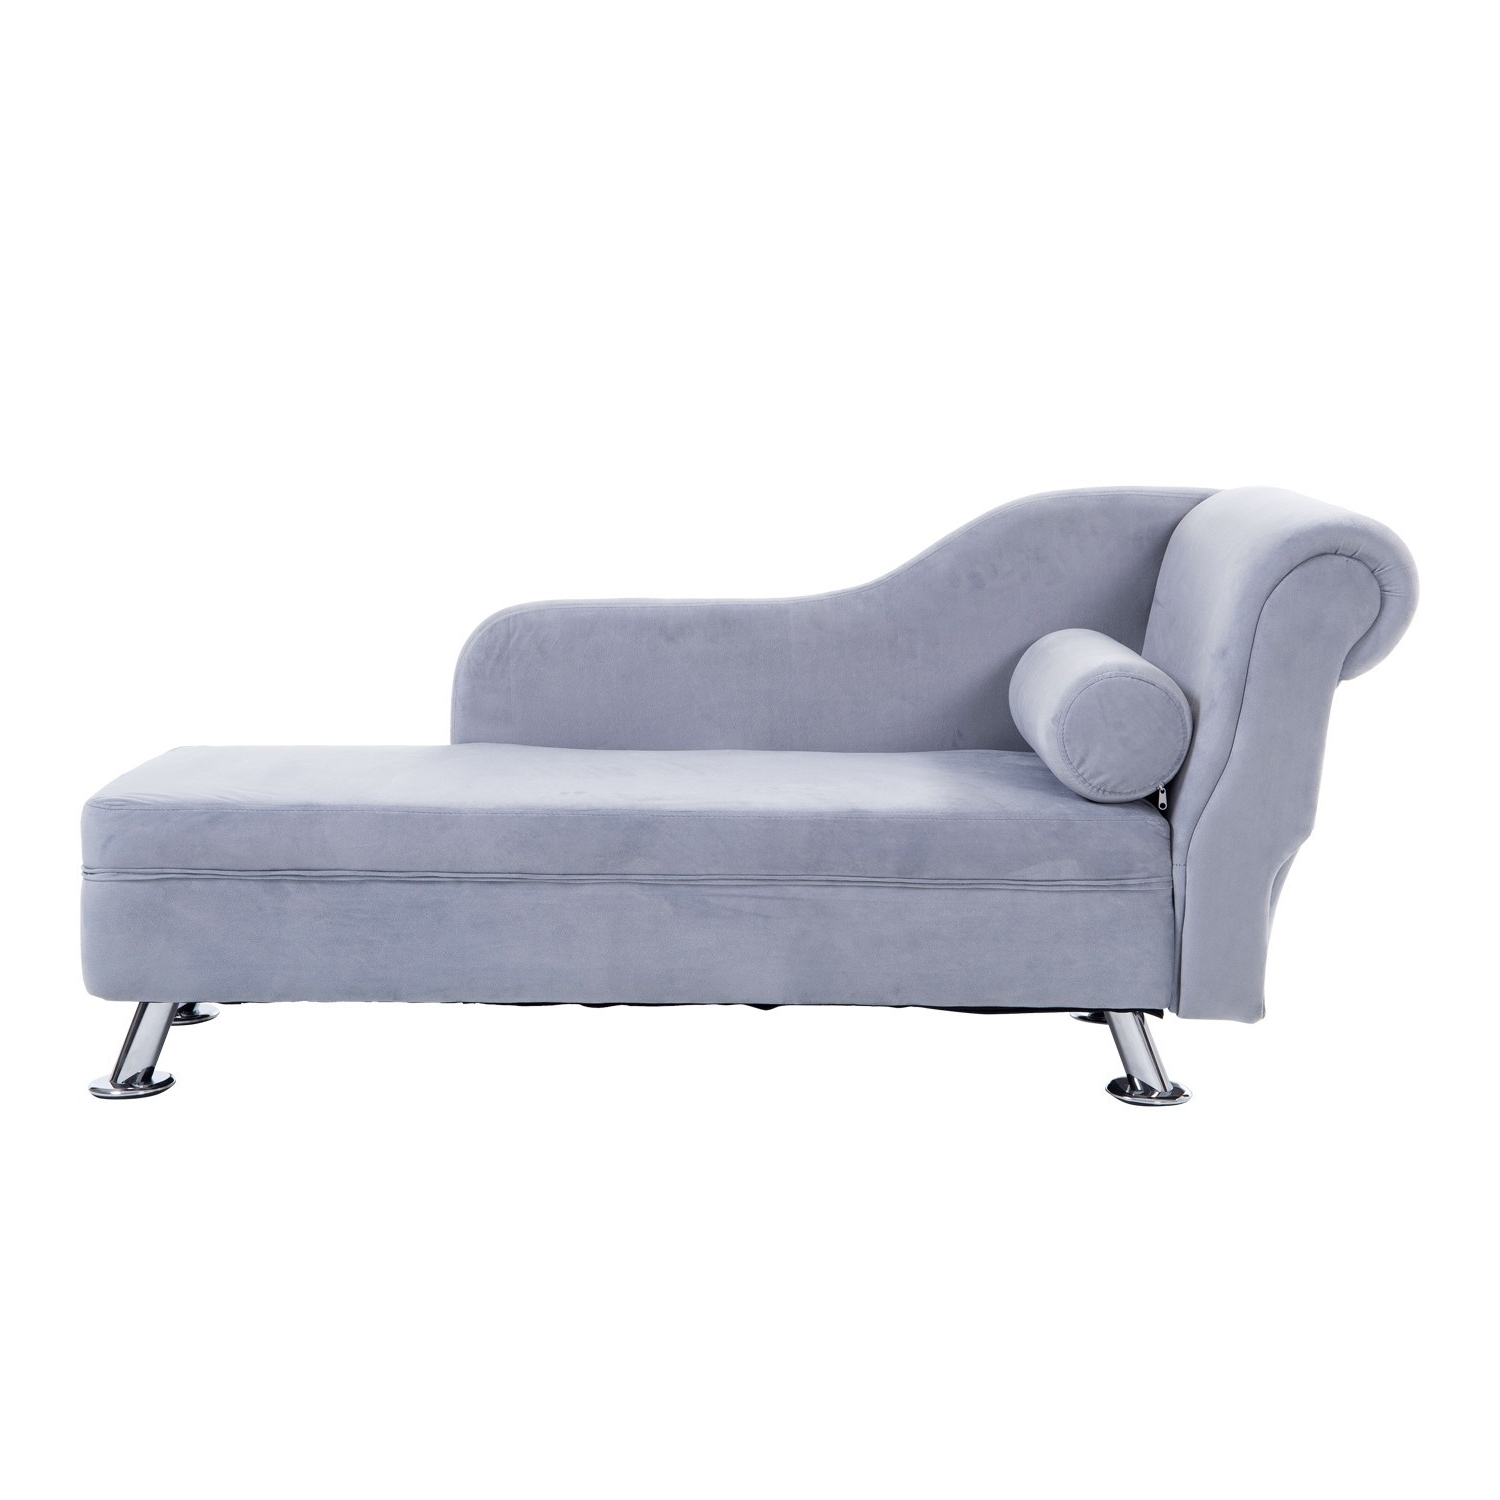 Newest Furniture : Chaise Lounge On Couch Chaise Lounge Cushions Ontario Inside Ontario Chaise Lounges (View 7 of 15)